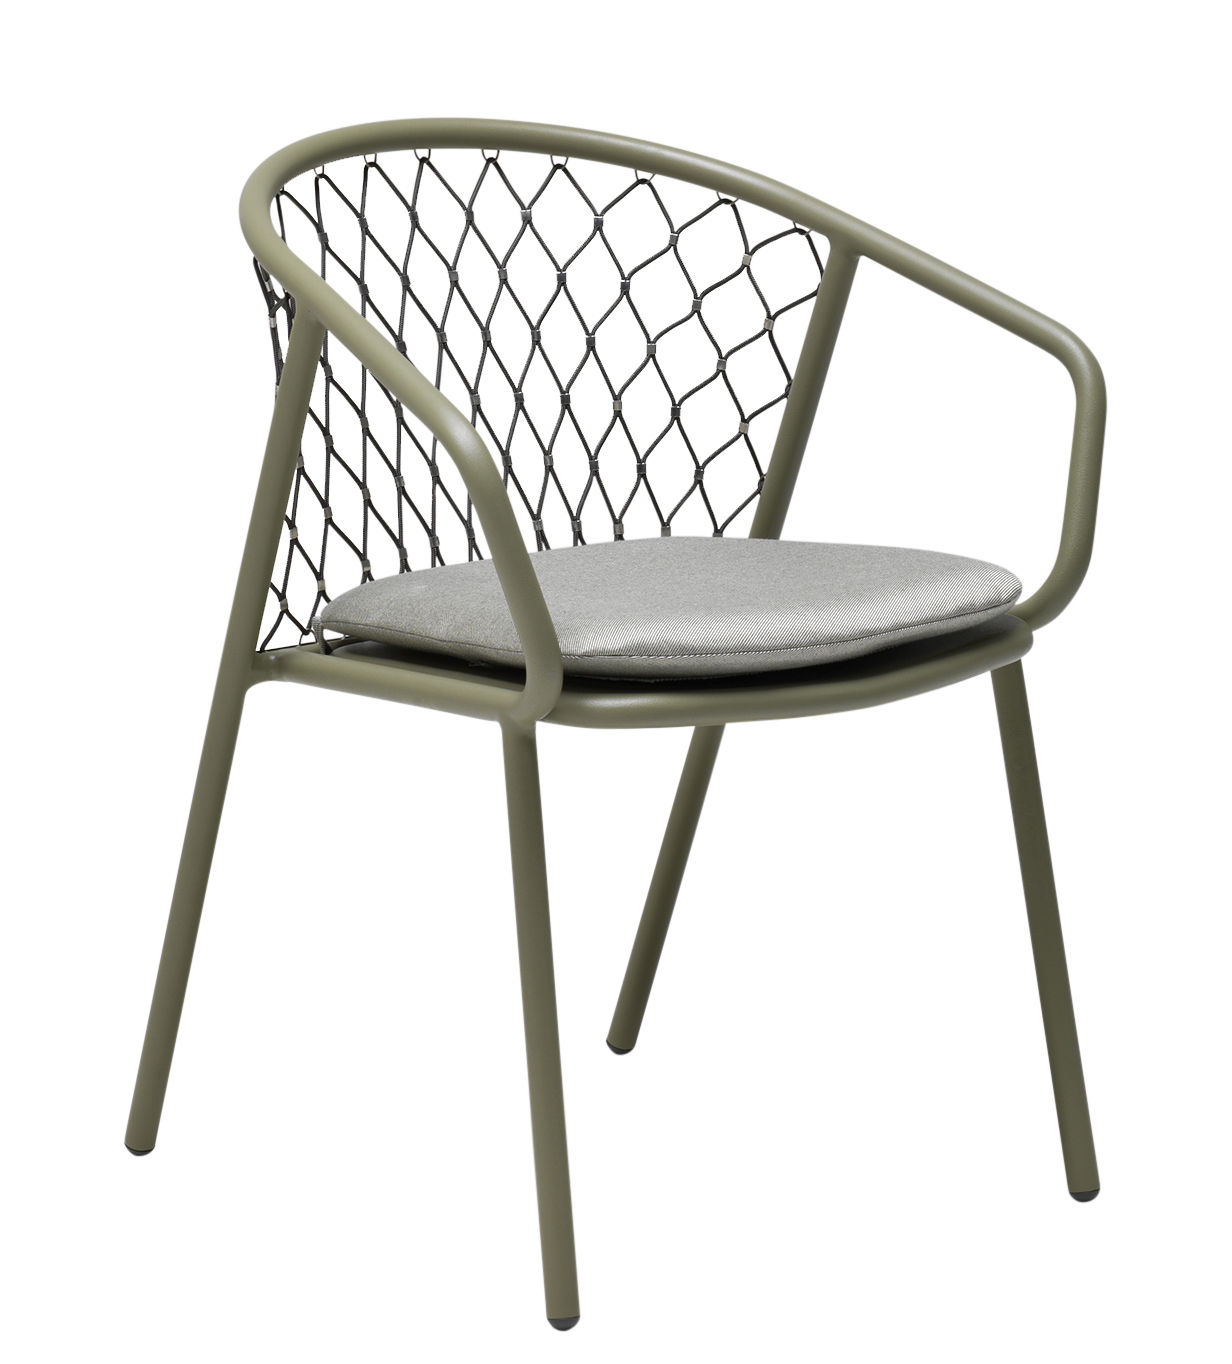 Furniture - Chairs - Nef Armchair - / Metal & polyester by Emu - Armchair / Cream & Light grey backrest - Cordes synthétiques, Varnished aluminium